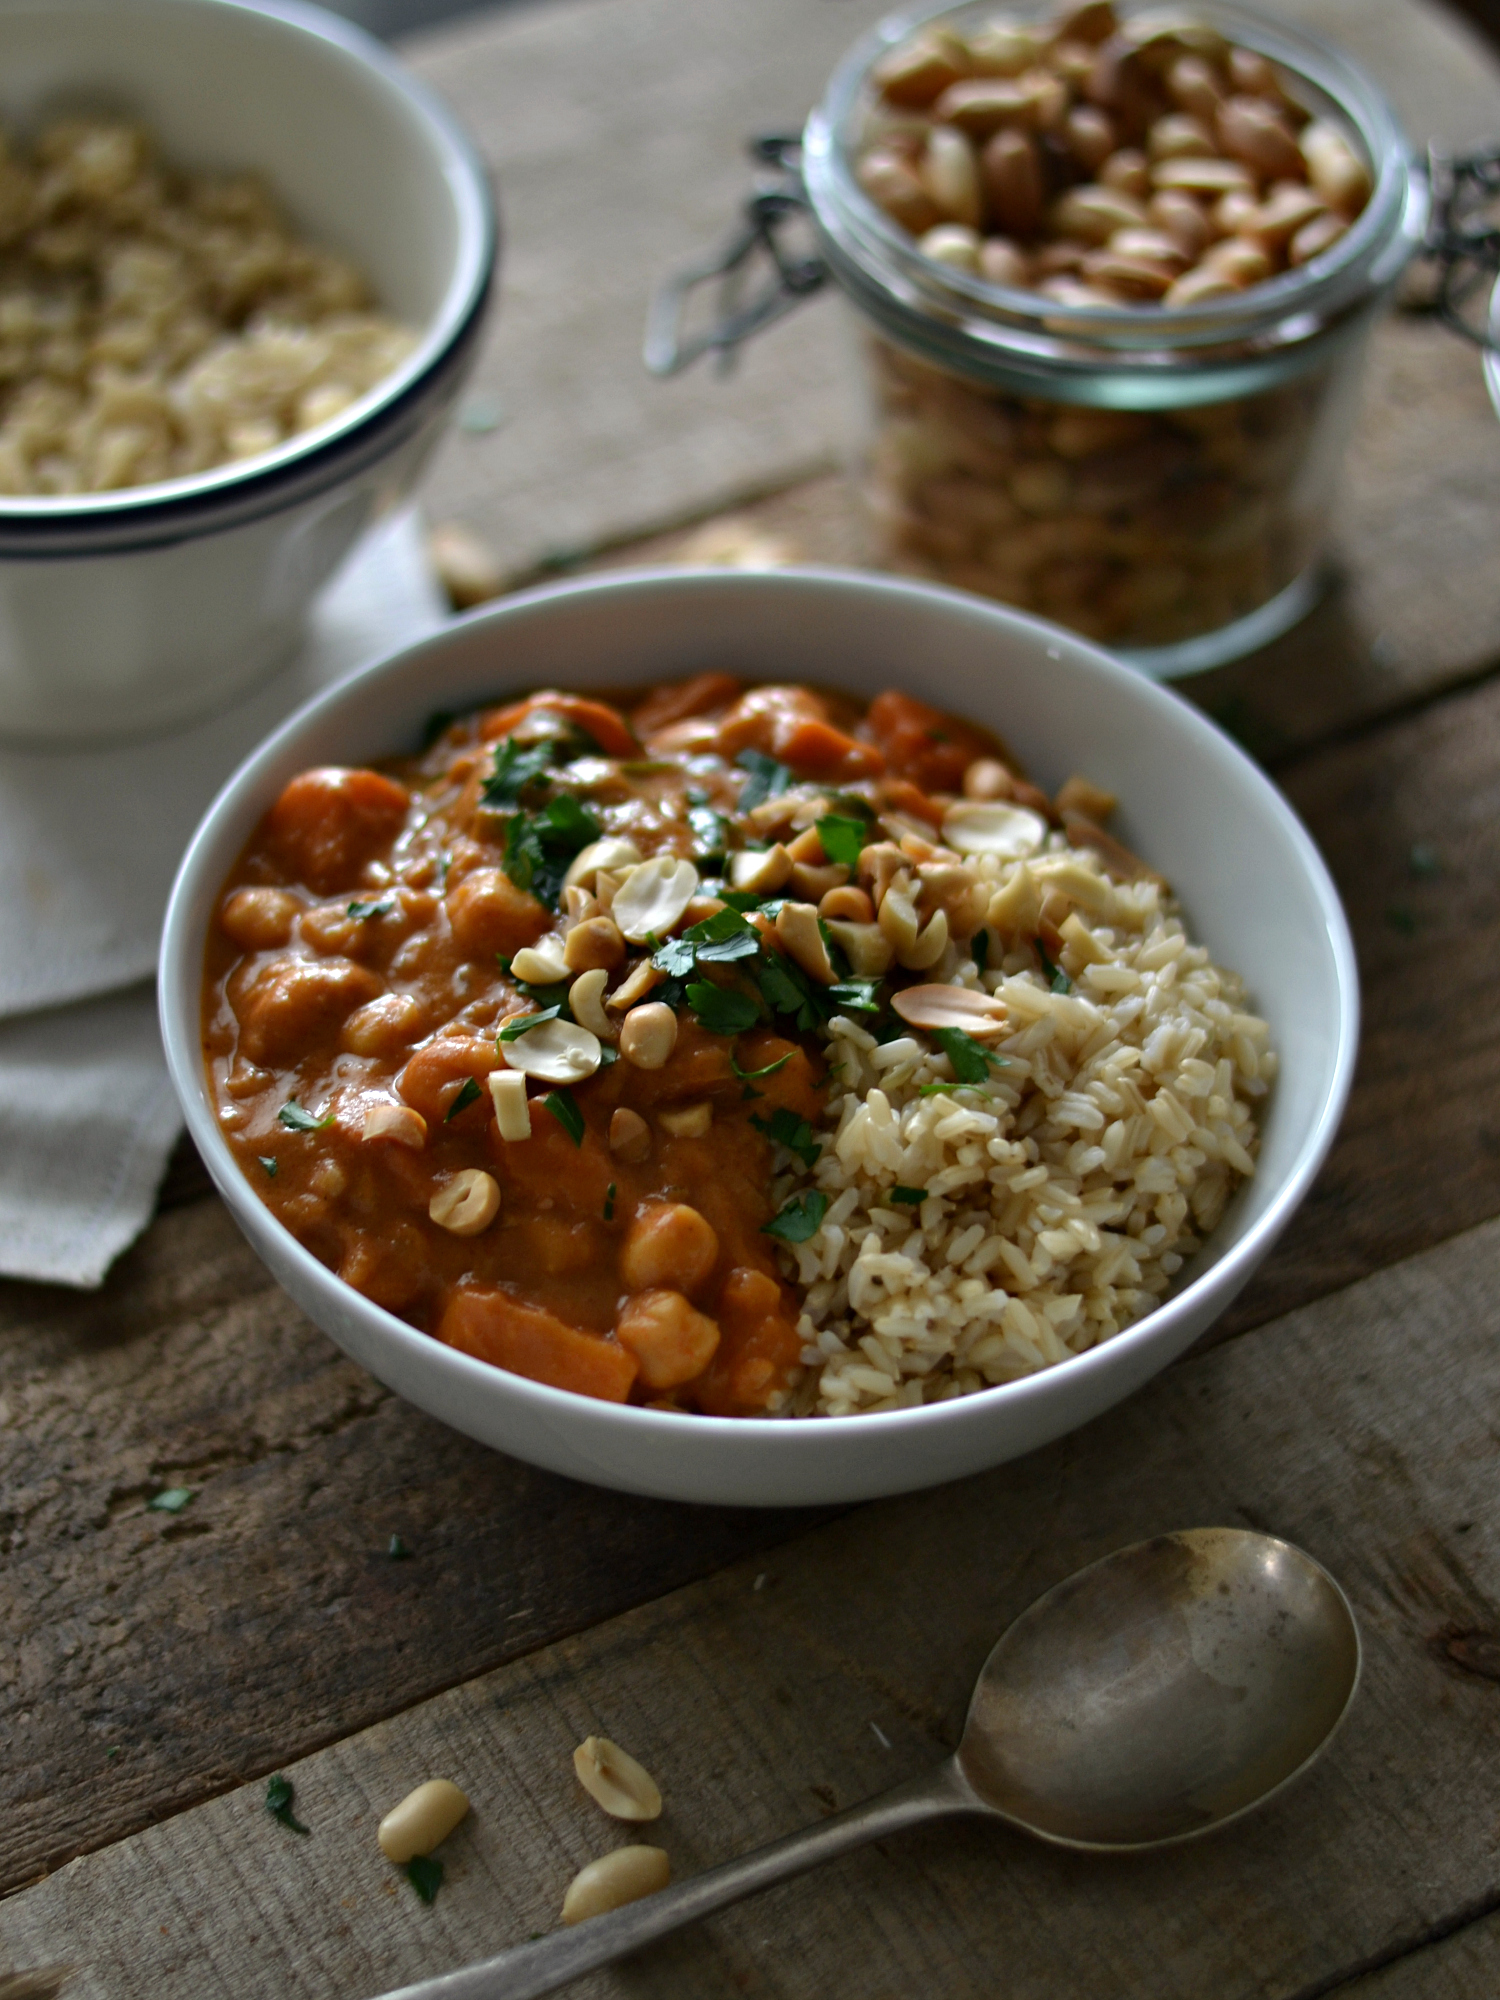 Peanut butter sweet potato stew